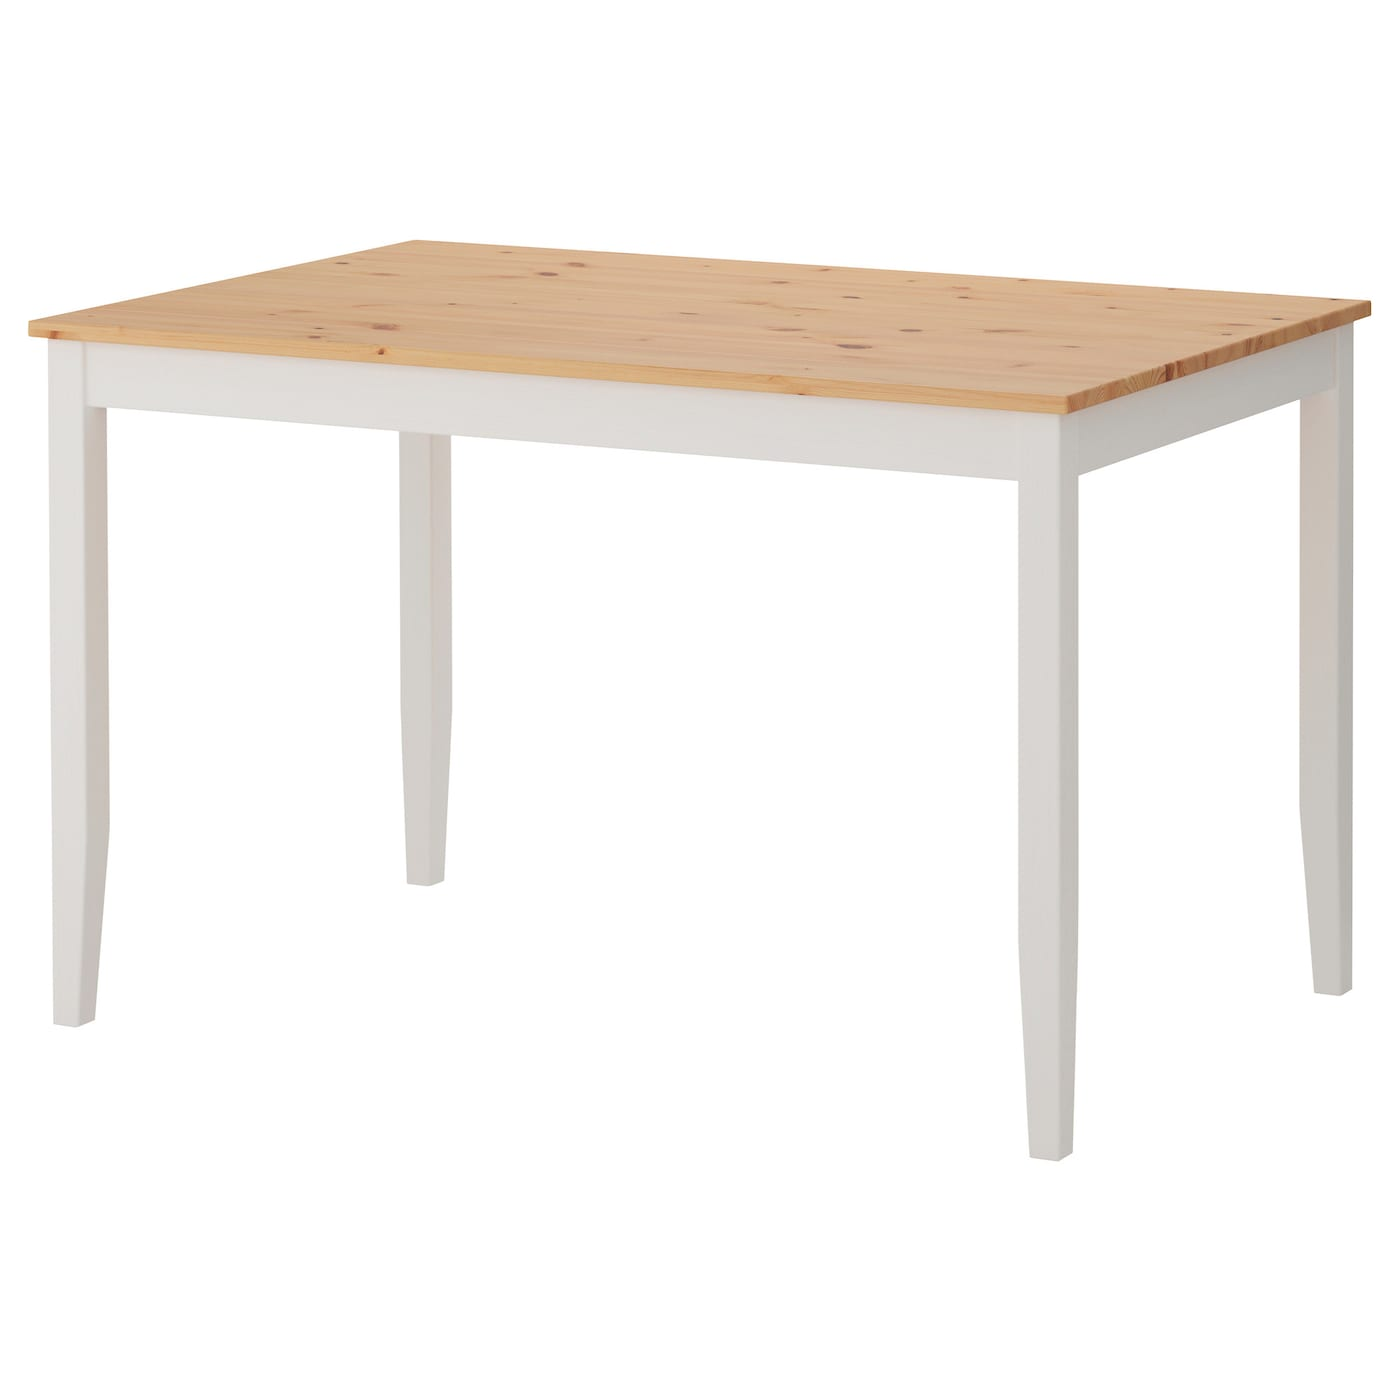 IKEA Dining Tables | IKEA Ireland - Dublin